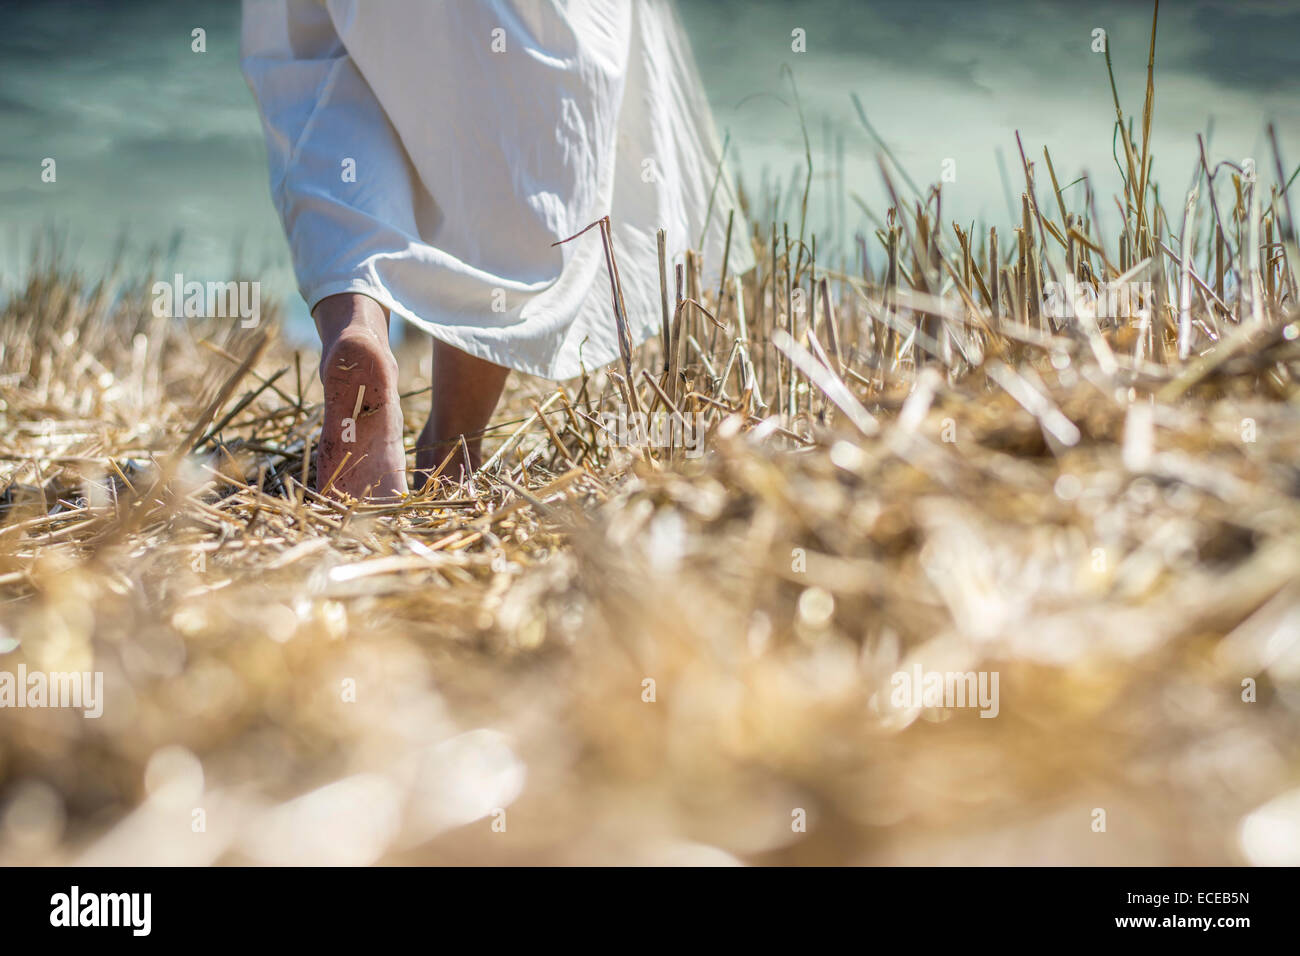 Young woman walking in field - Stock Image